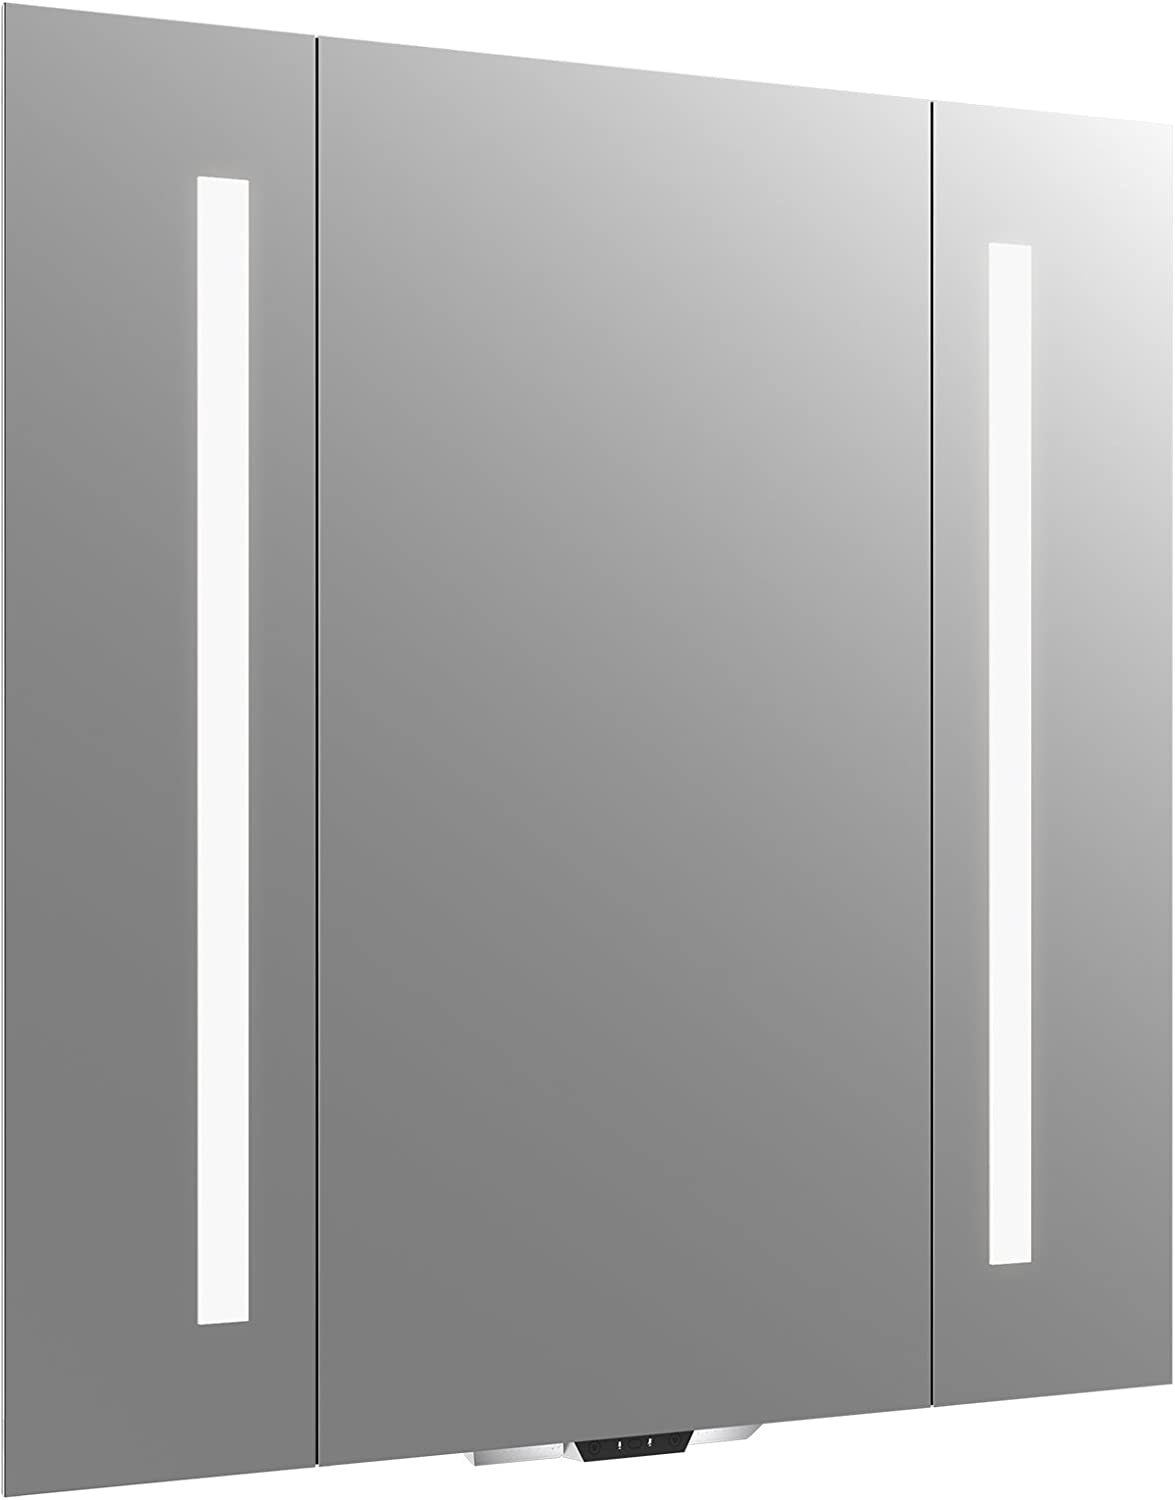 "Vanity Mirror with Lights by KOHLER, Bathroom Vanity Mirror with Amazon Alexa, Verdera Voice Collection, 34"" Wide By 33"" High, K-99572-VLAN-NA"